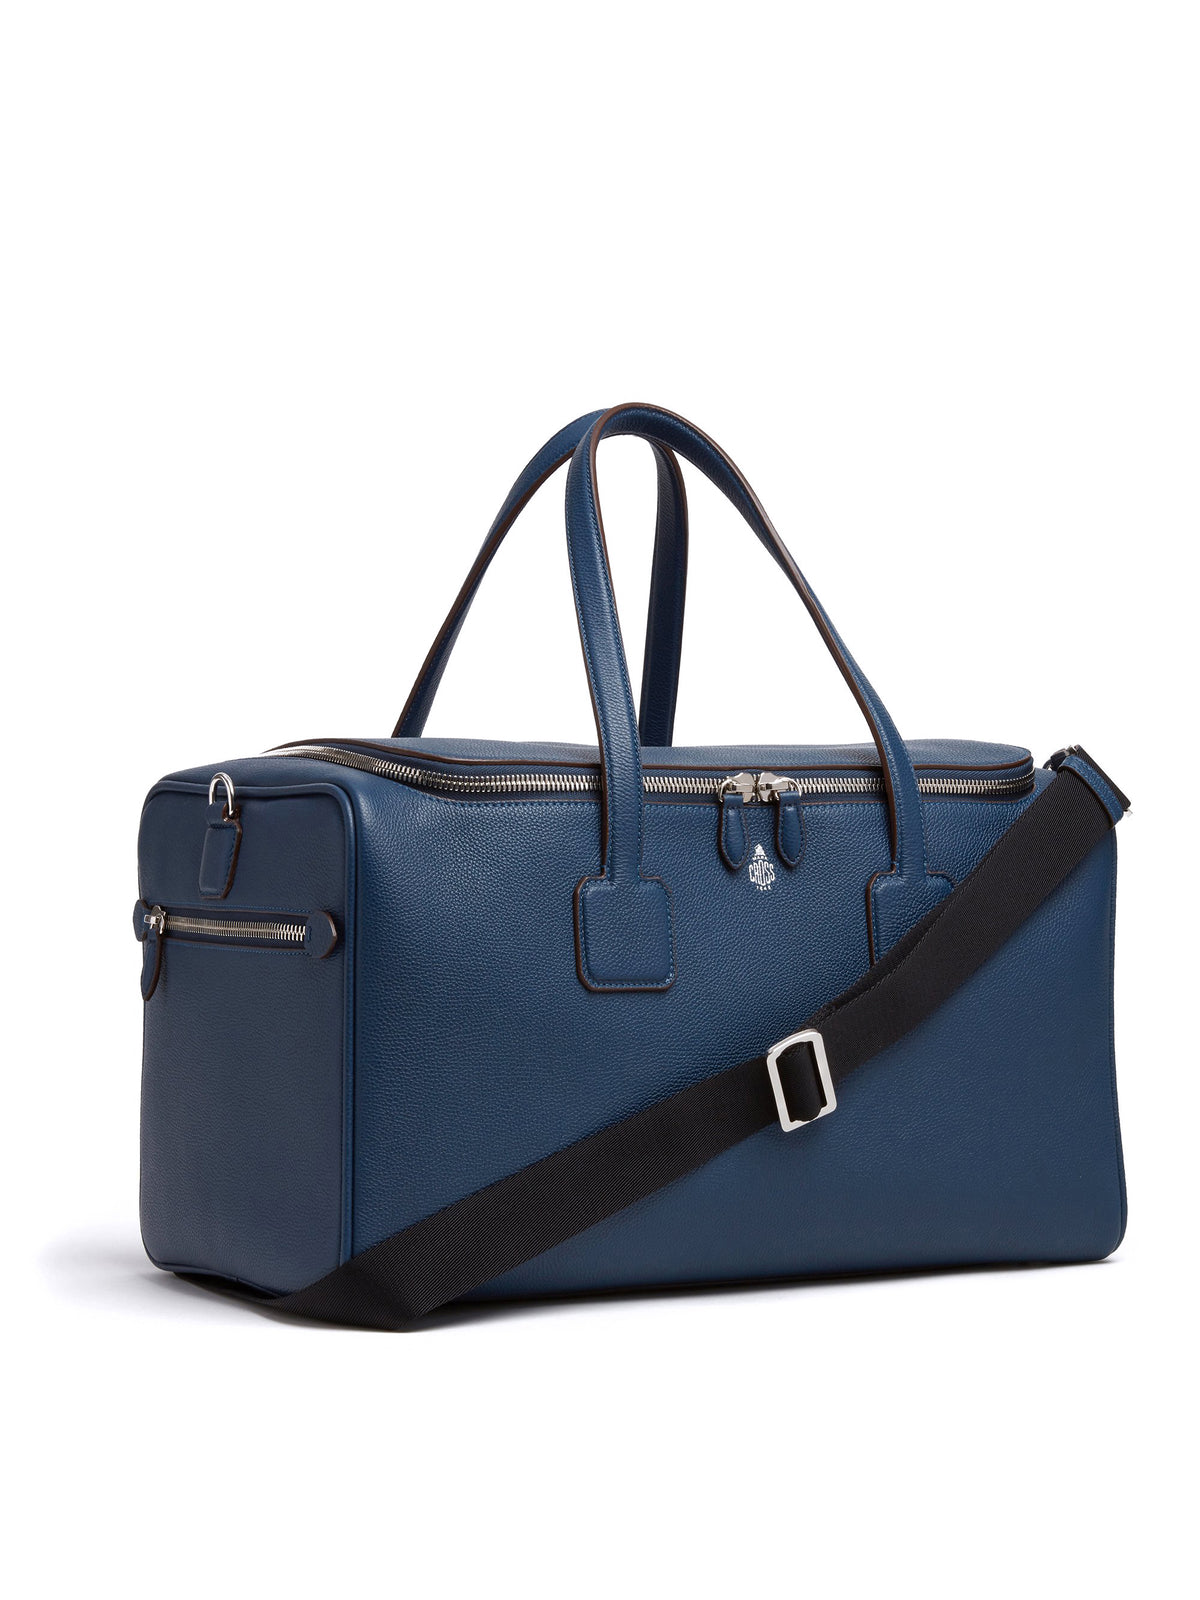 Mark Cross Henry Leather Sports Duffle Bag Tumbled Grain Navy Side